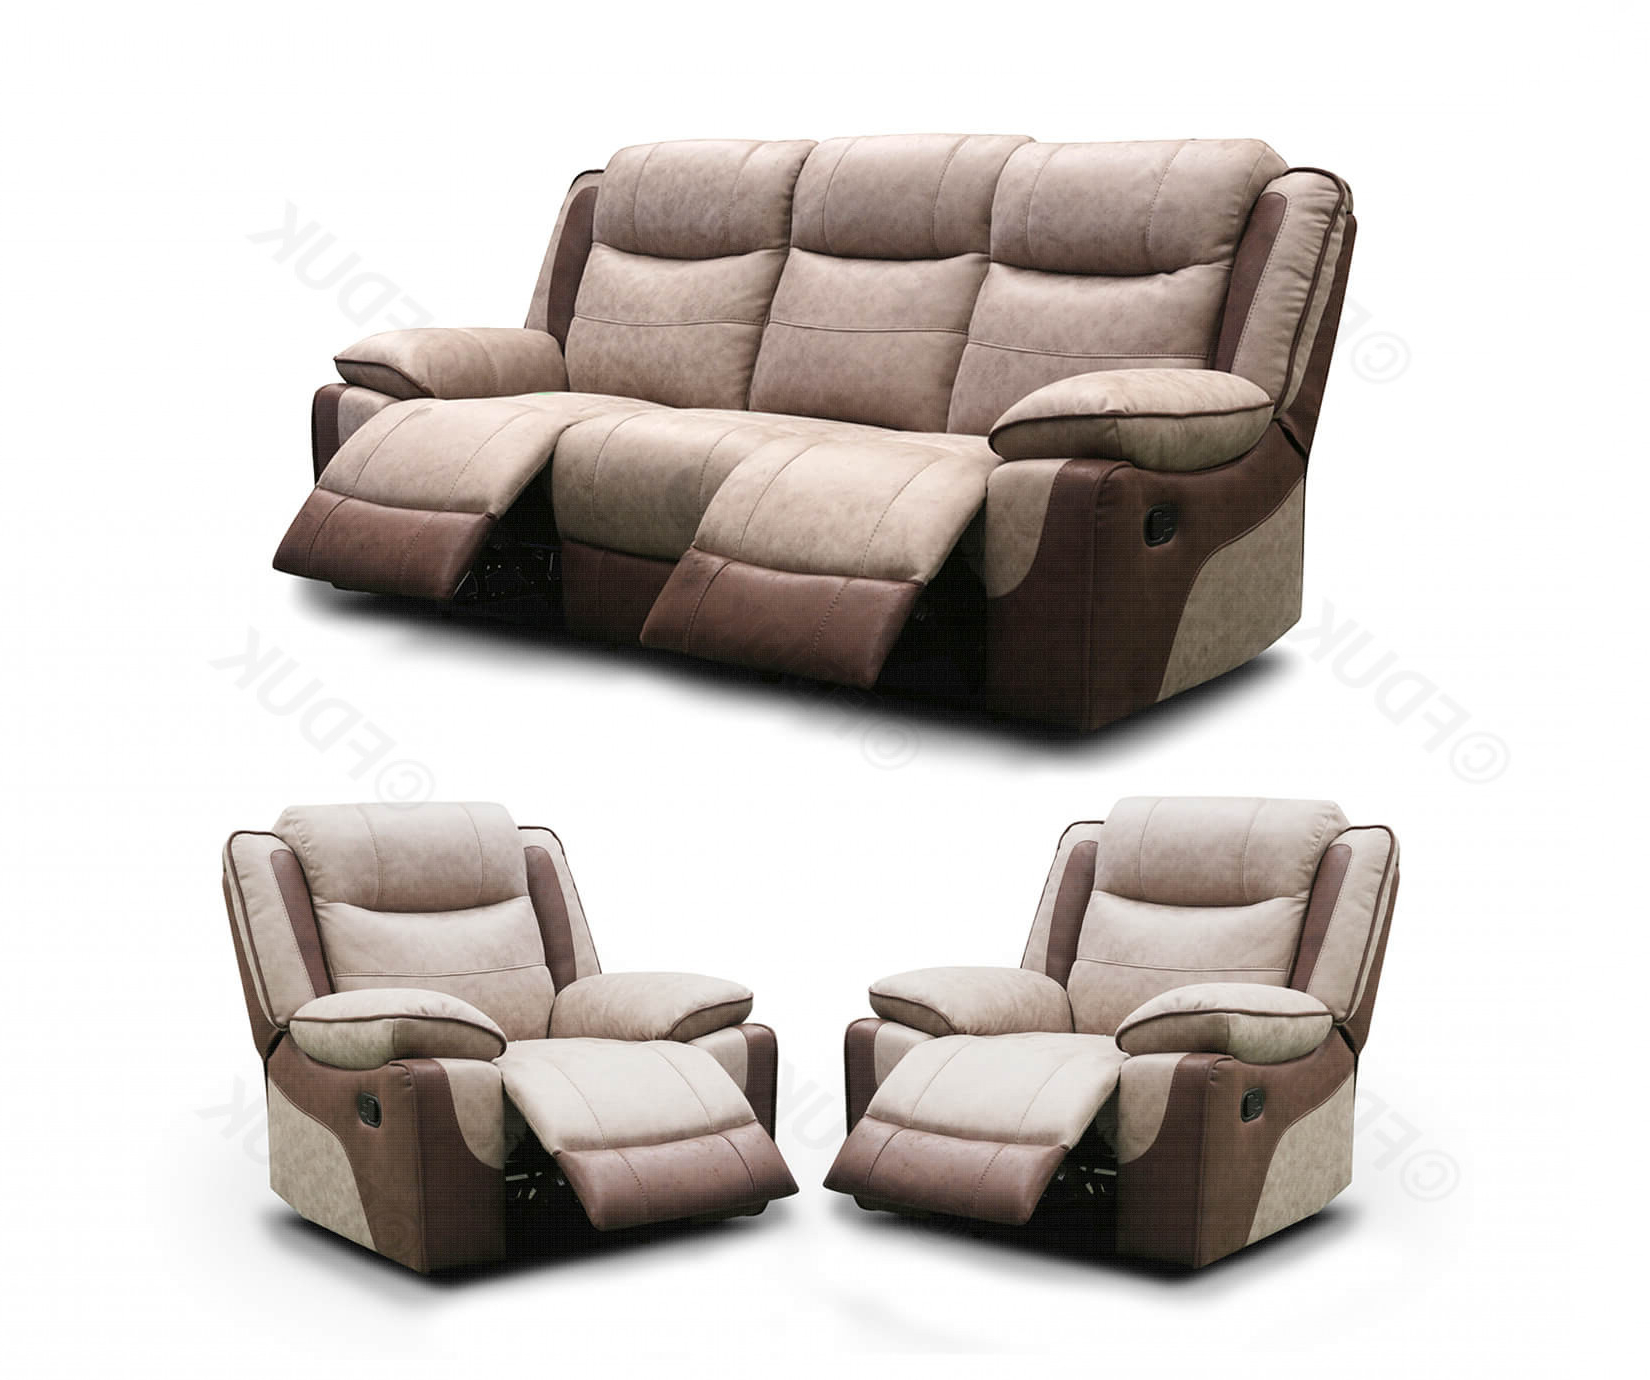 Paige 3+1+1 Manual Recliner Sofa Set (View 10 of 20)